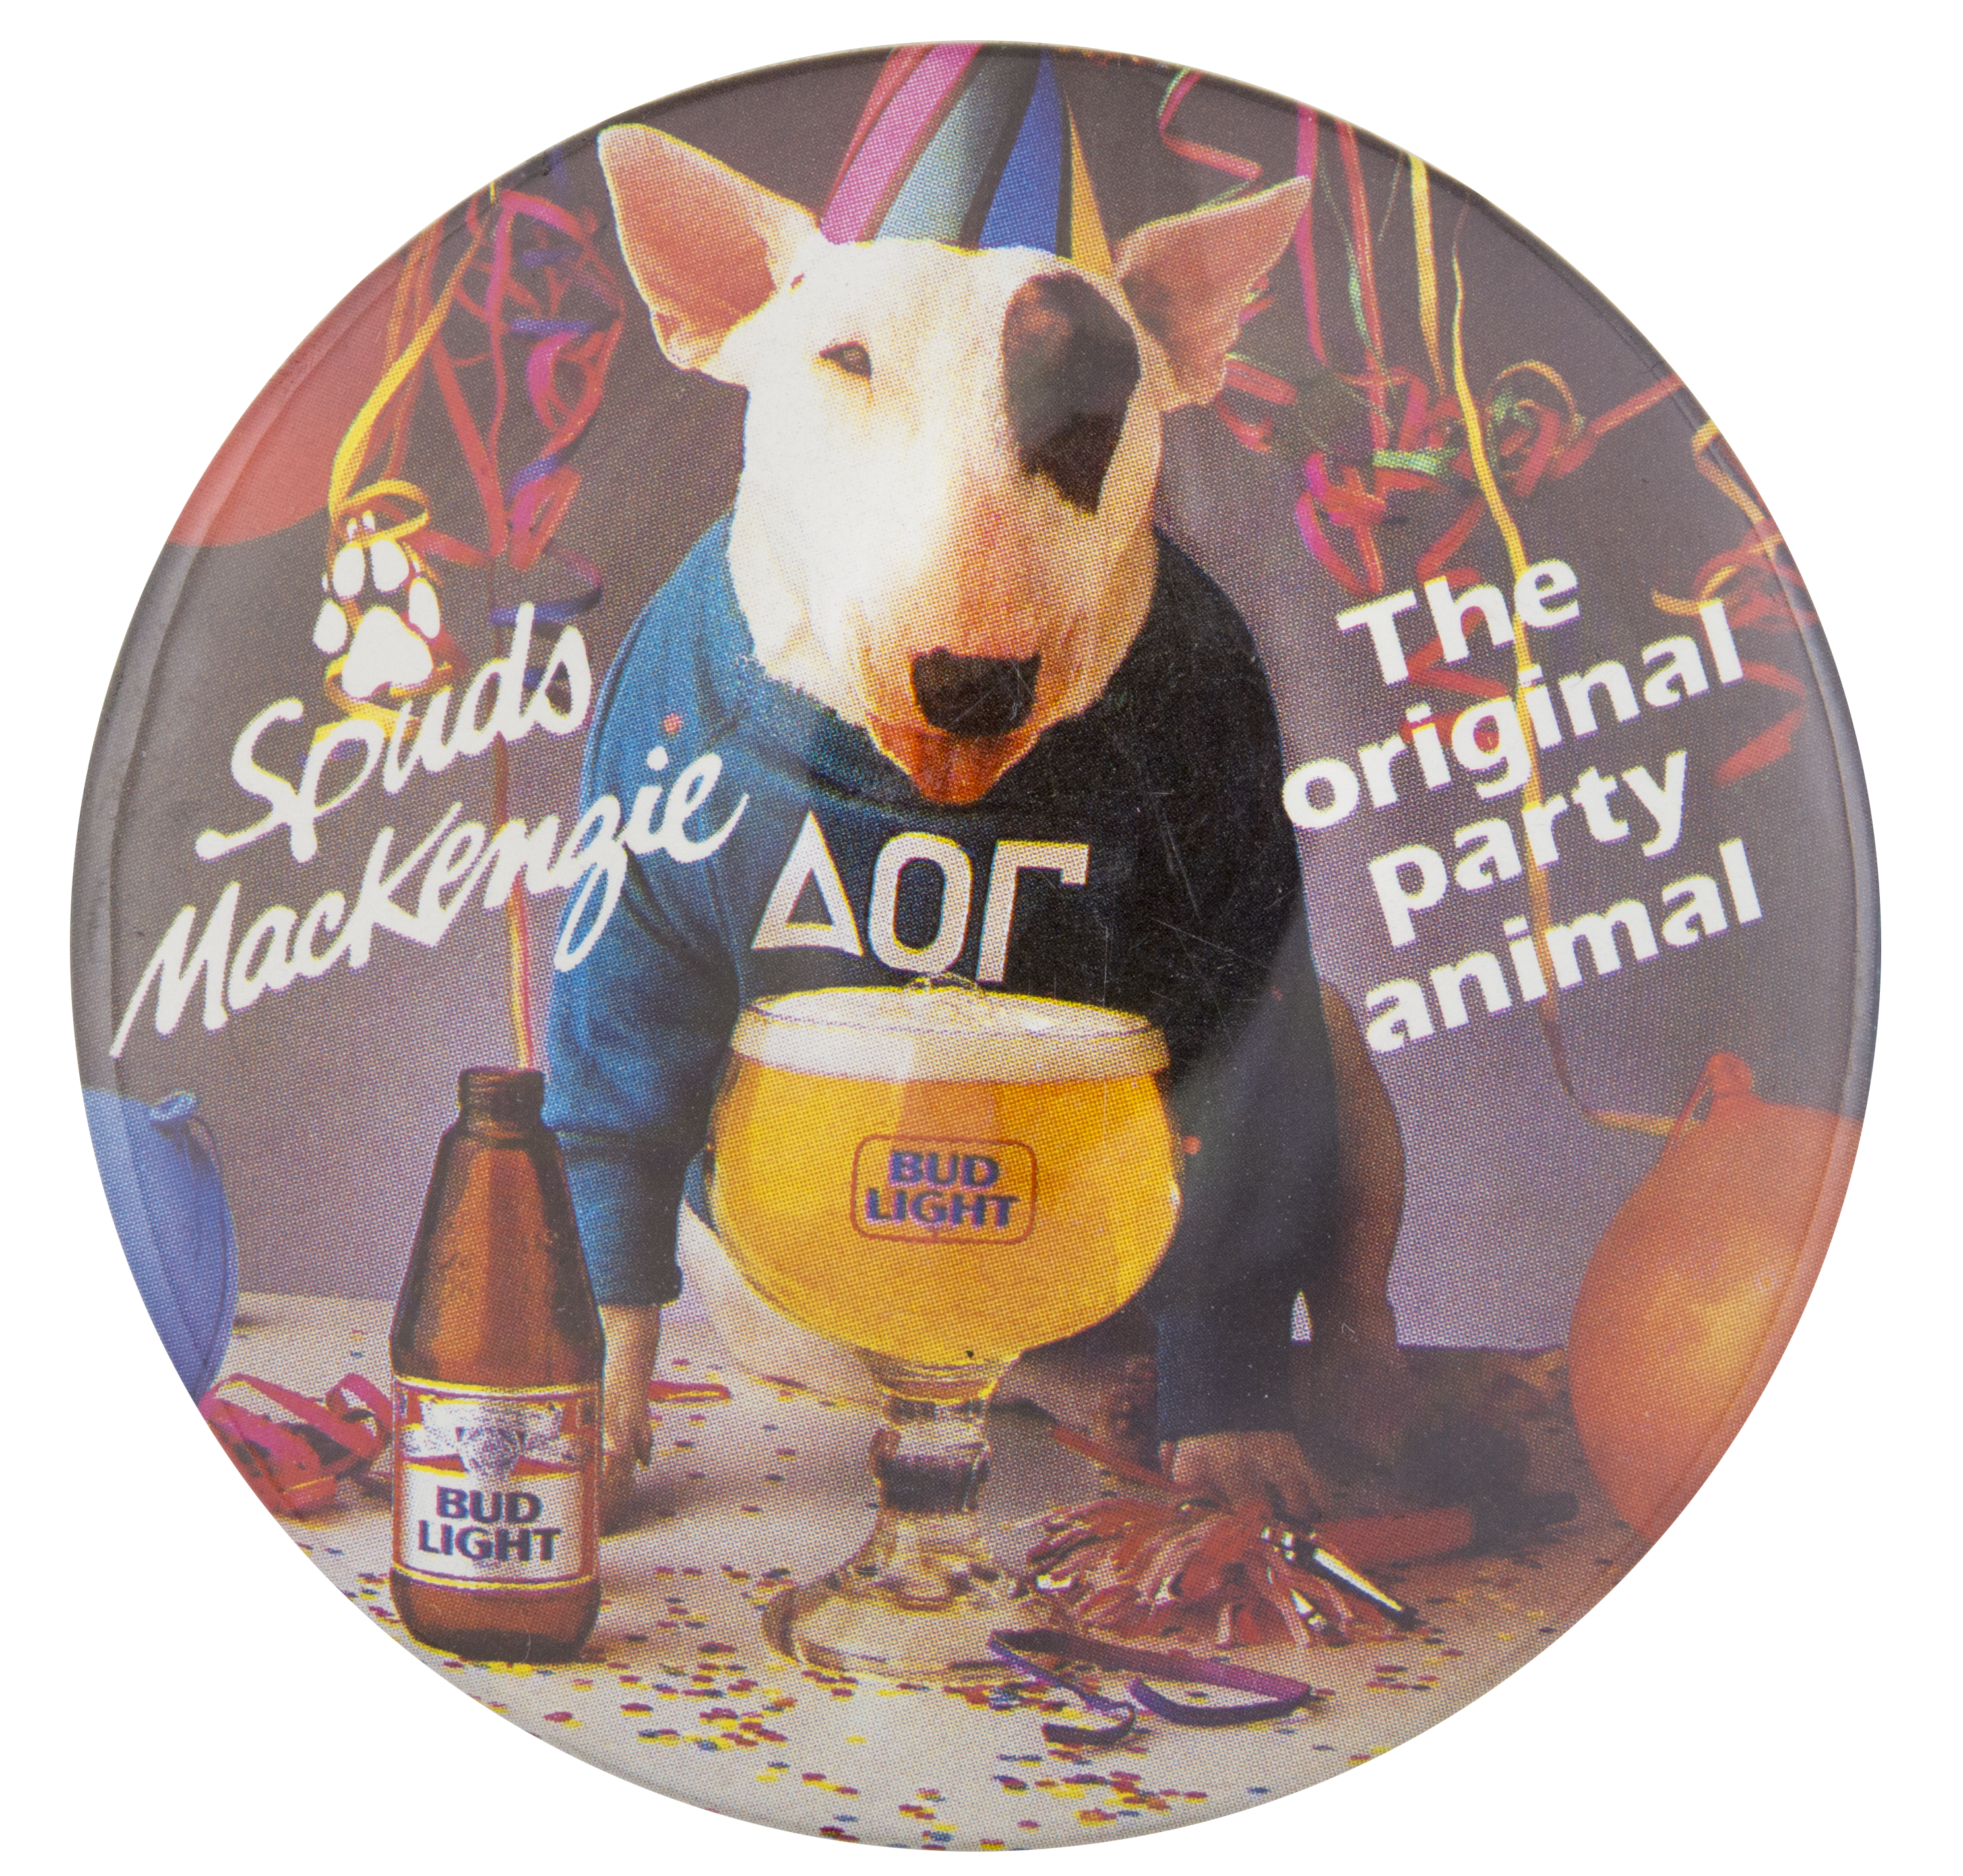 Bud Light Spuds MacKenzie Party Animal Beer Button Museum